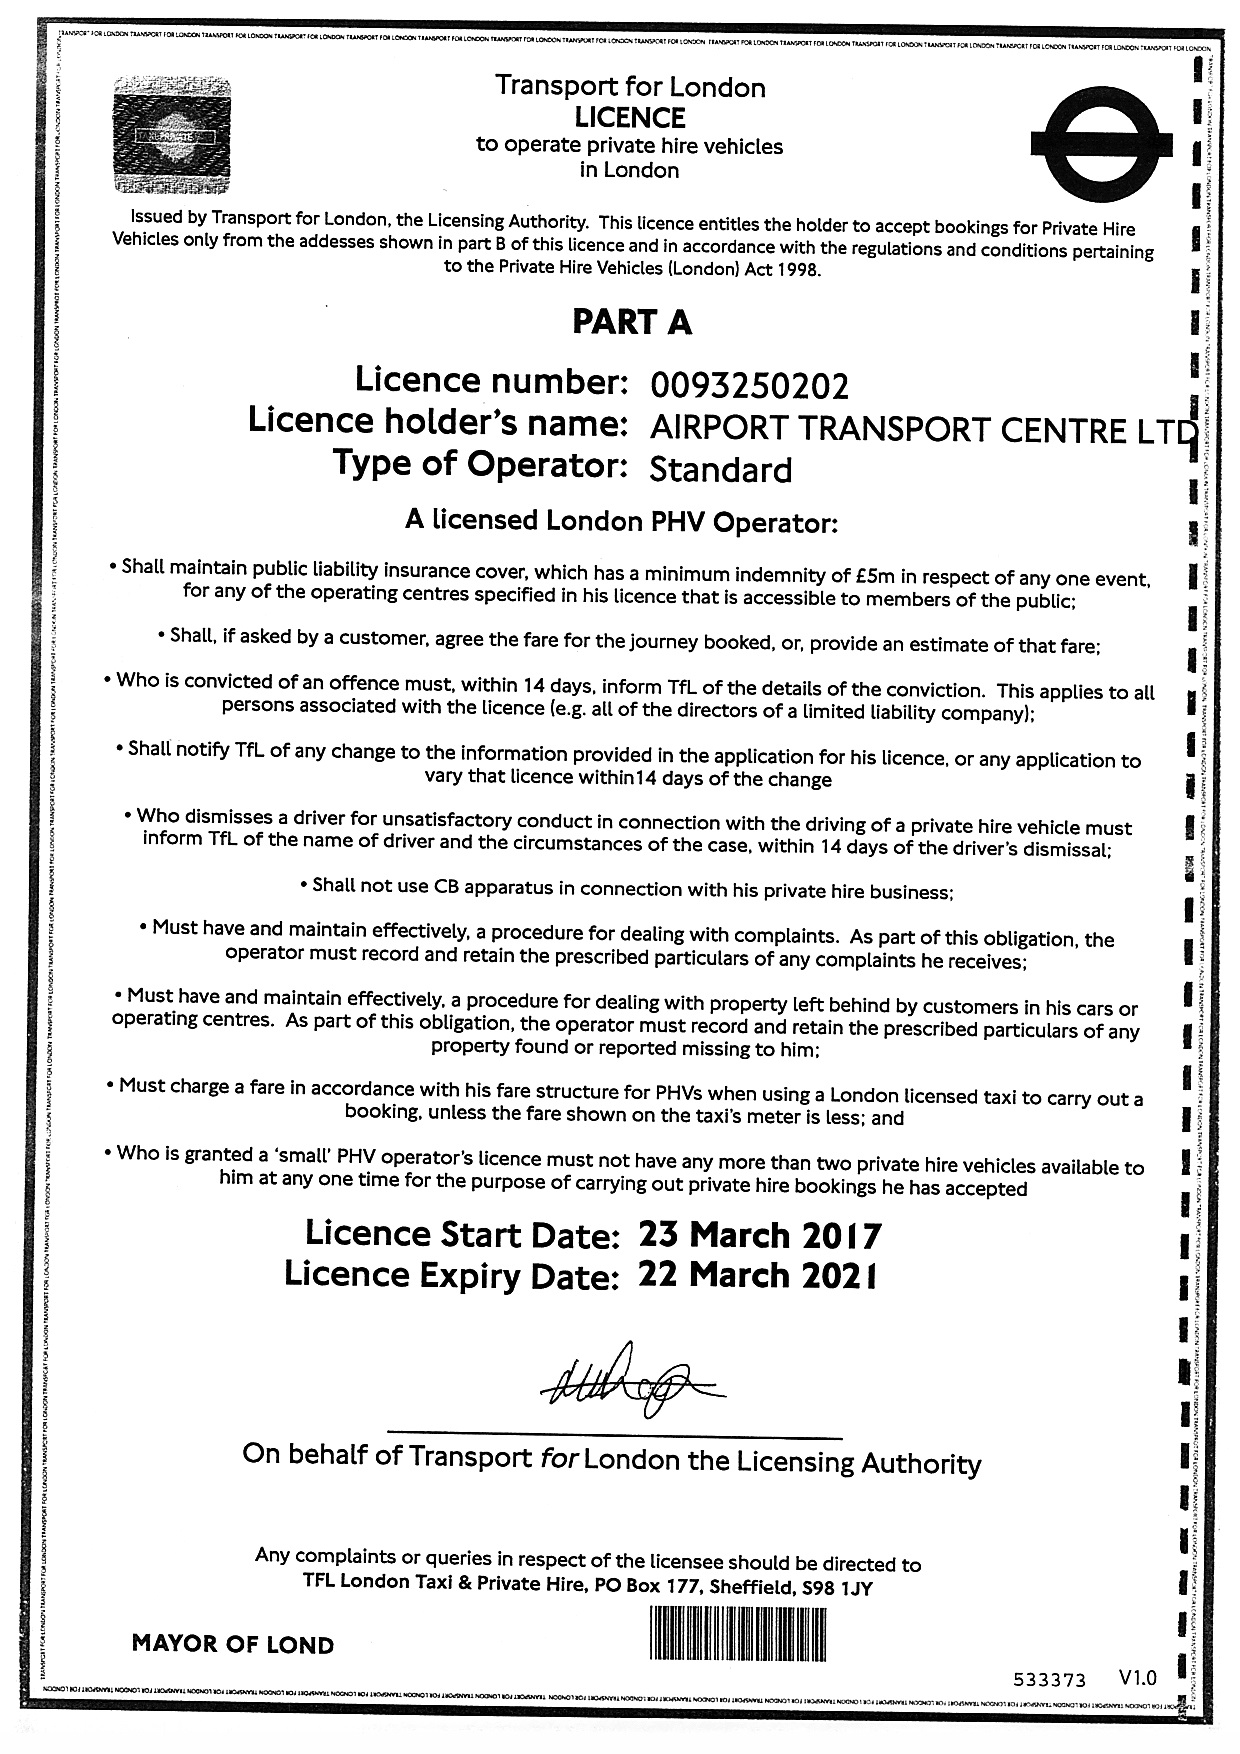 Airport Transport Centre Ltd transport licence